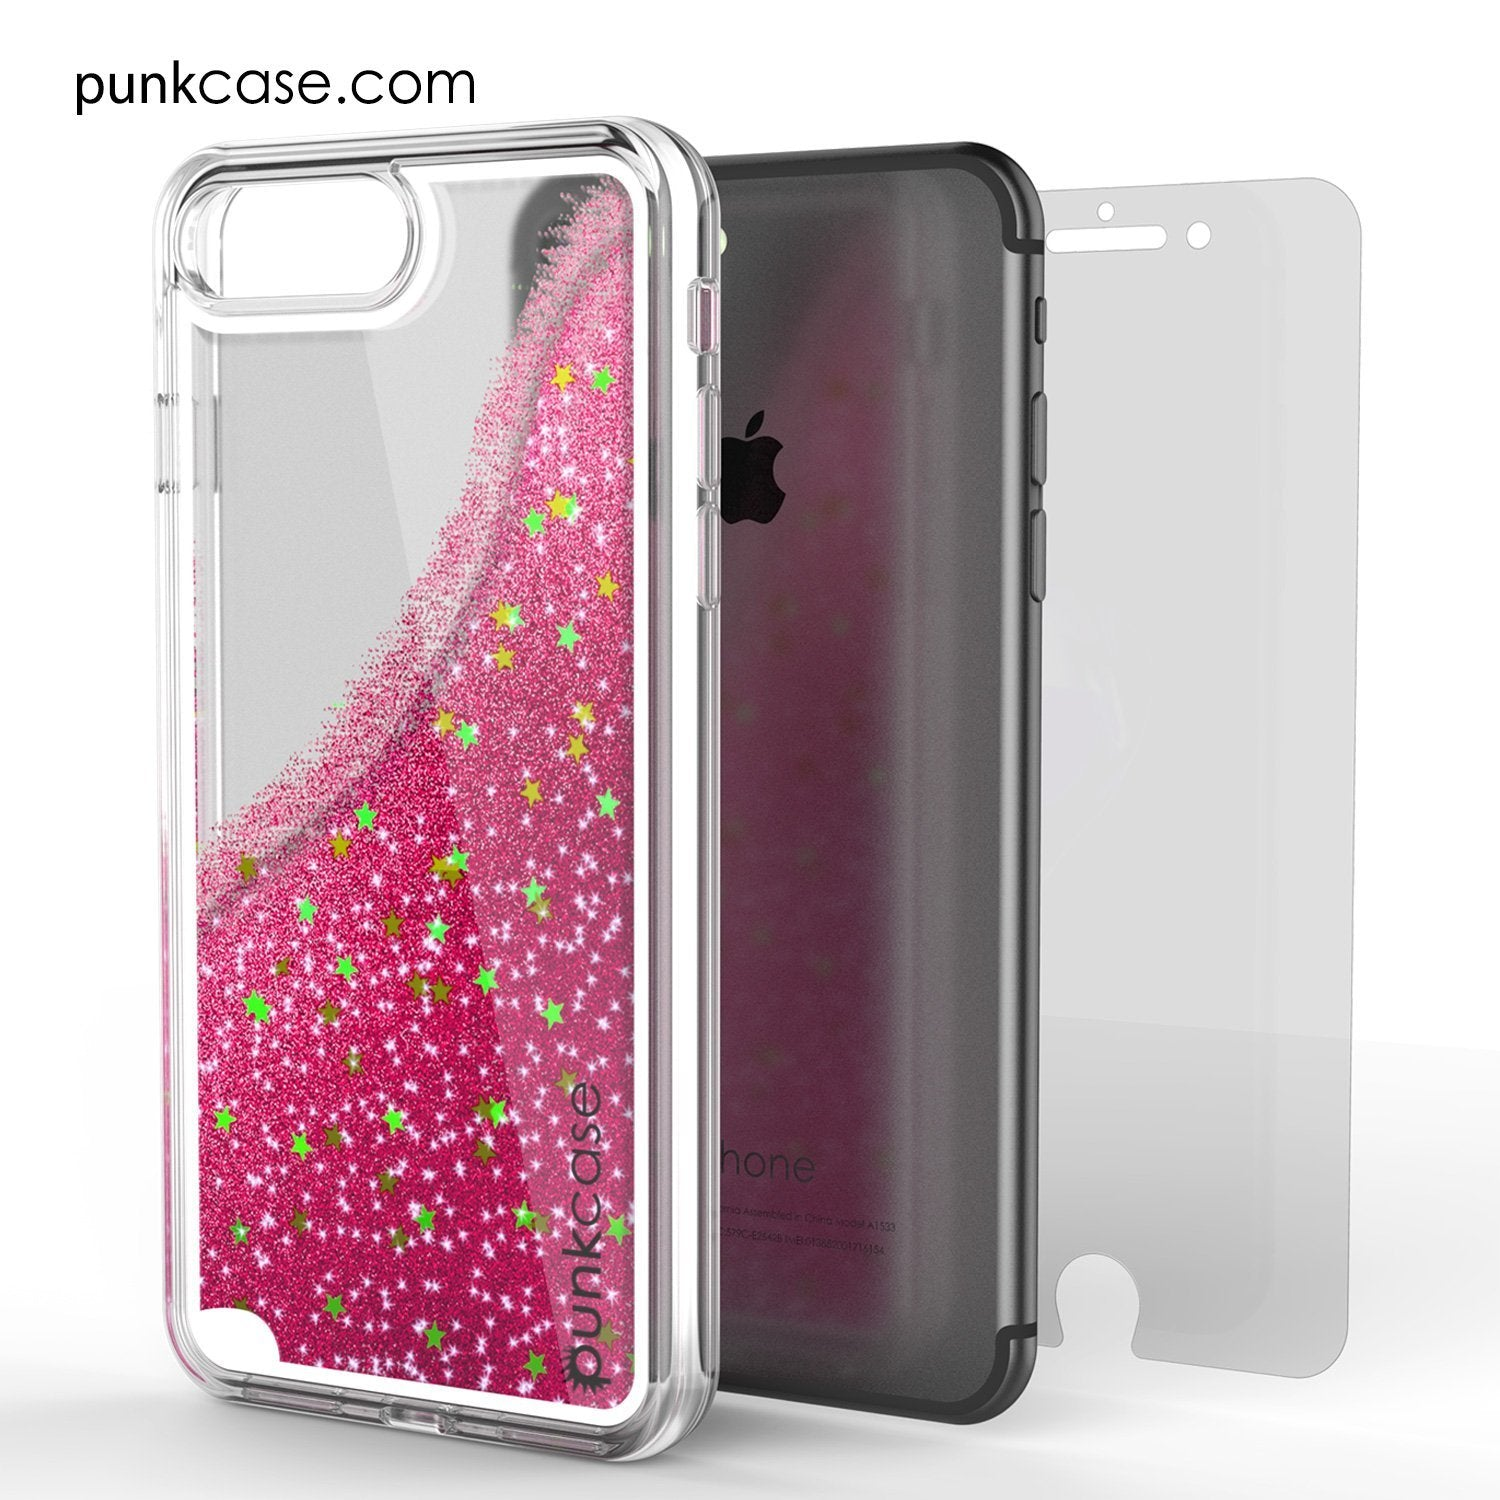 iPhone 8+ Plus Case, PunkCase LIQUID Pink Series, Protective Dual Layer Floating Glitter Cover - PunkCase NZ